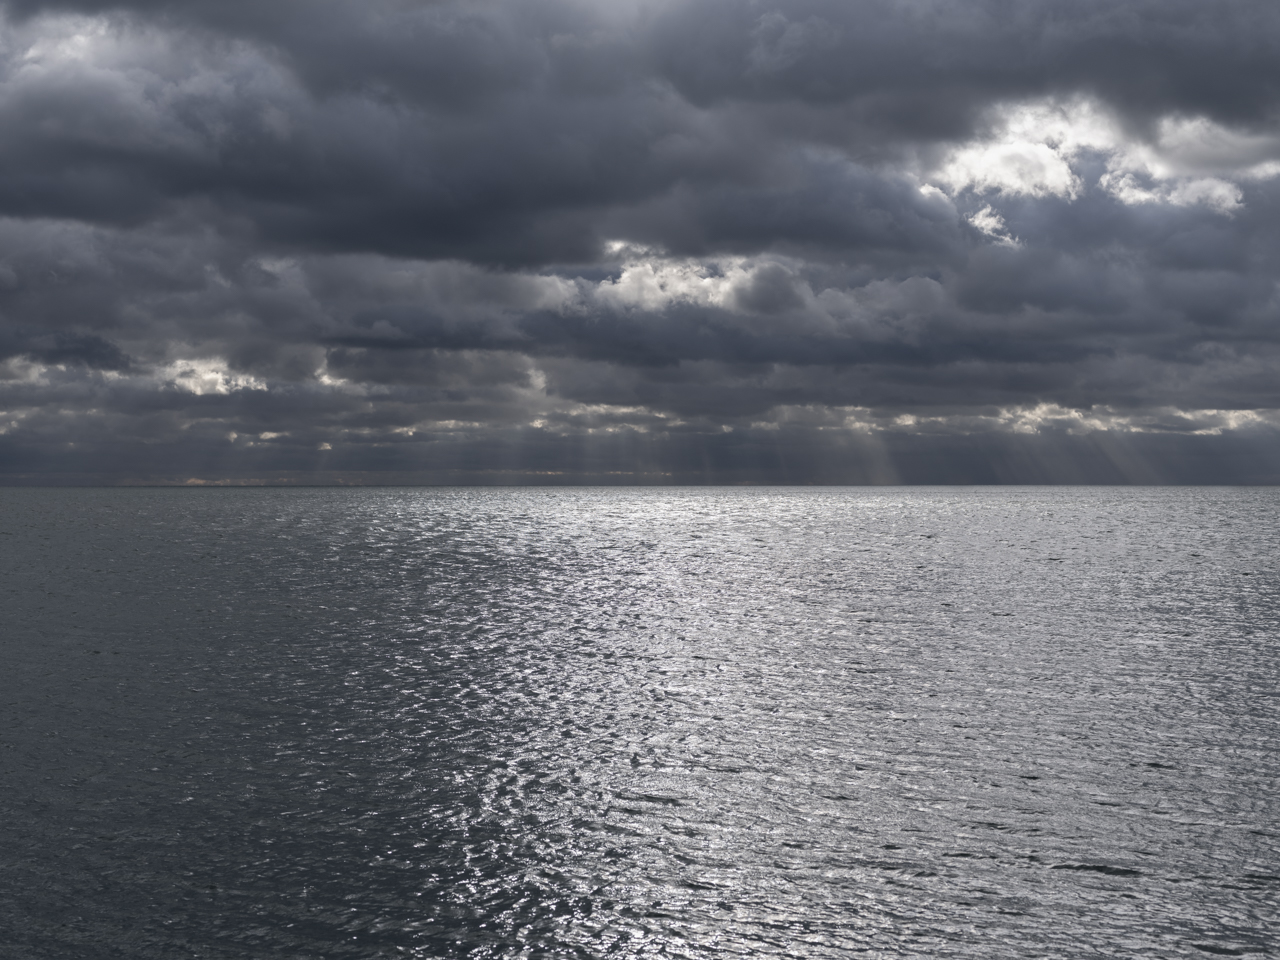 a dark sky with light streaming through over a steely Lake Michigan